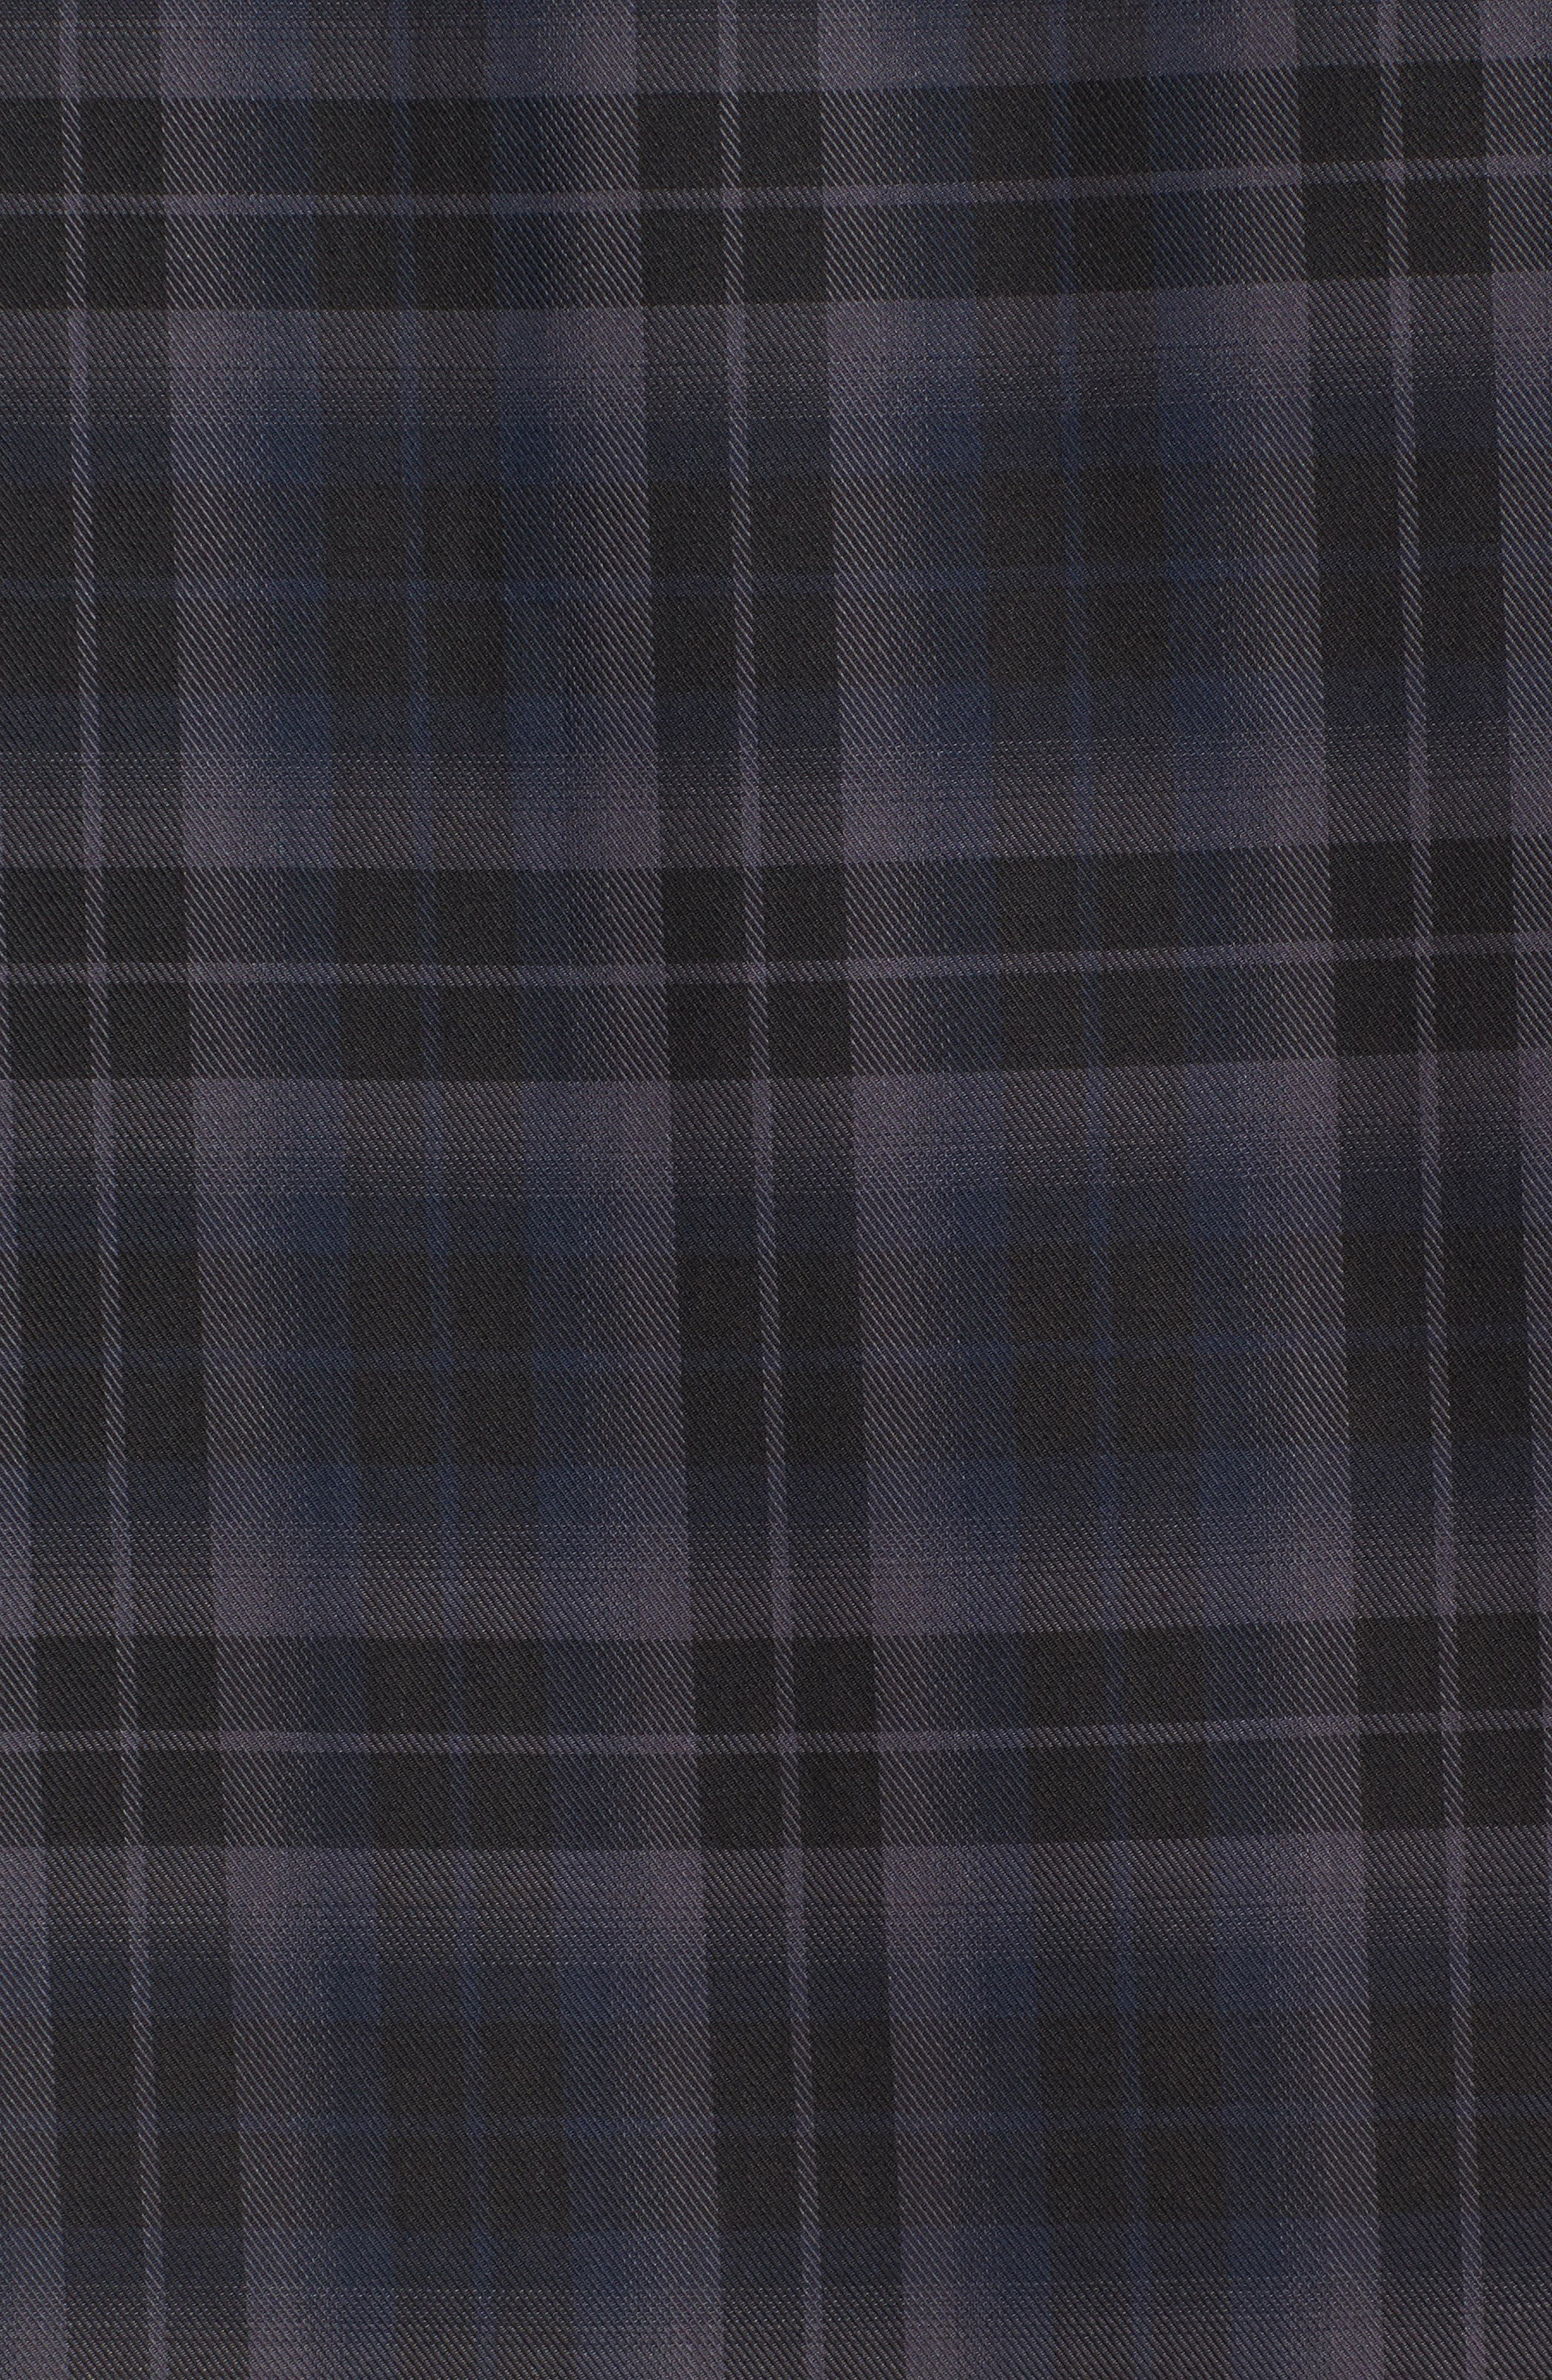 Classic Fit Large Check Twill Sport Shirt,                             Alternate thumbnail 5, color,                             020